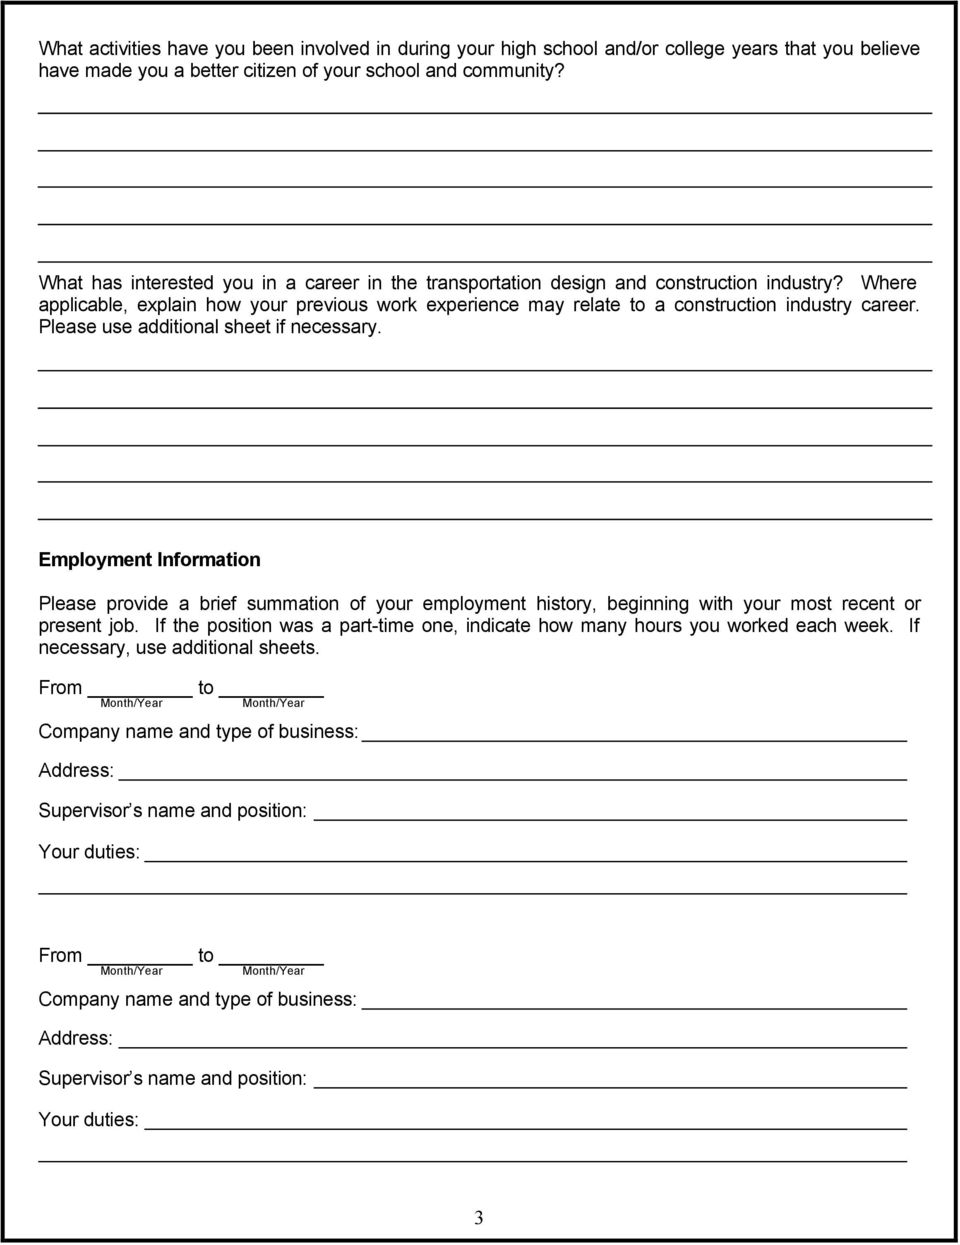 Please use additional sheet if necessary. Employment Information Please provide a brief summation of your employment history, beginning with your most recent or present job.